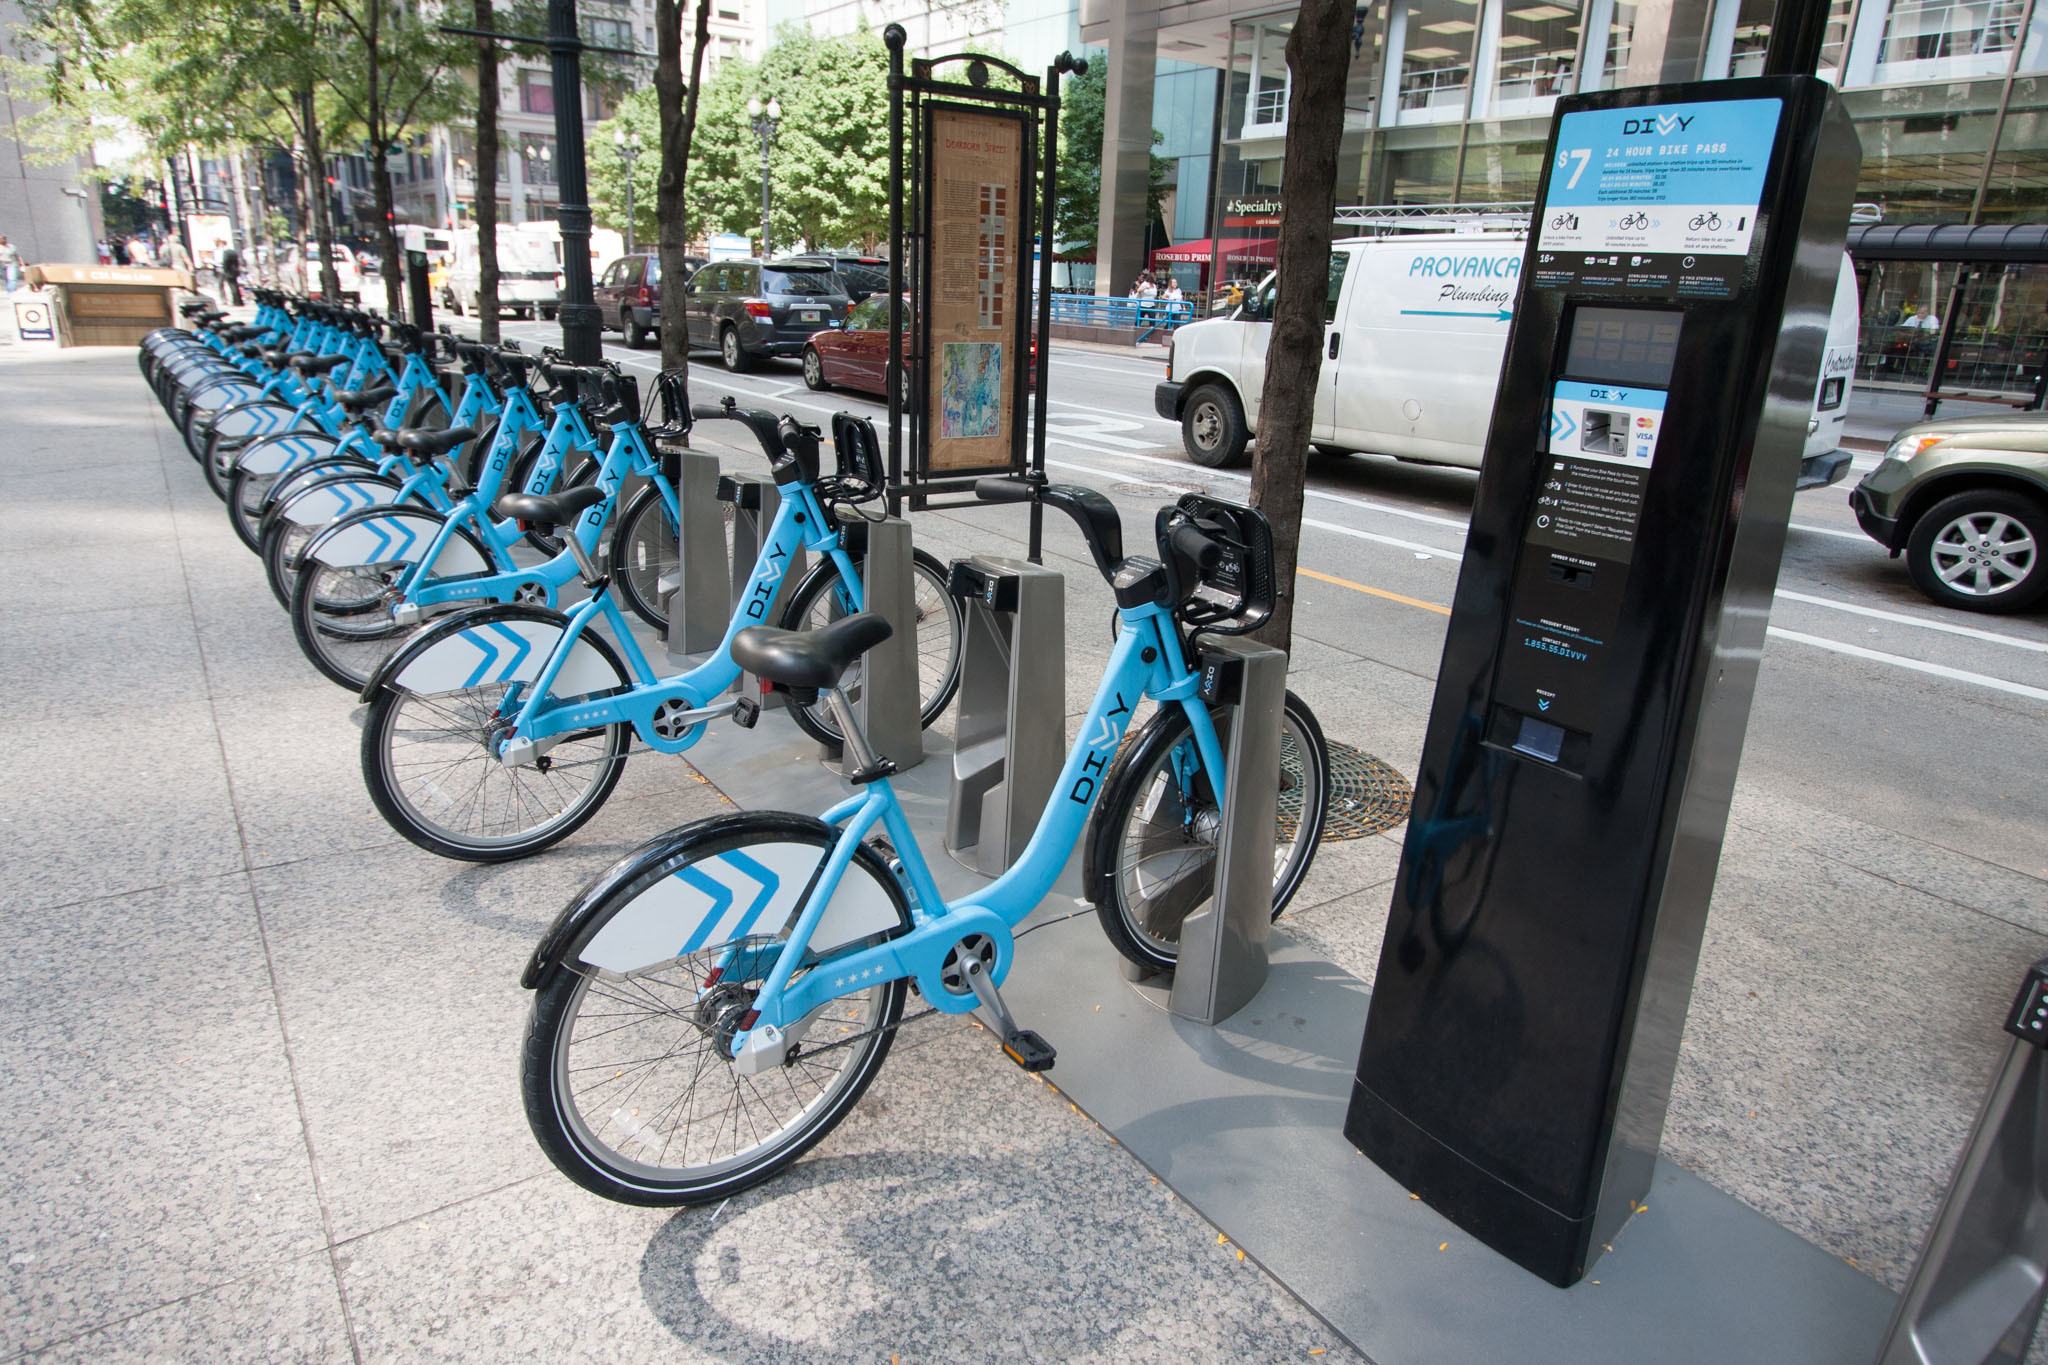 Get discounts and free burritos during Divvy Week